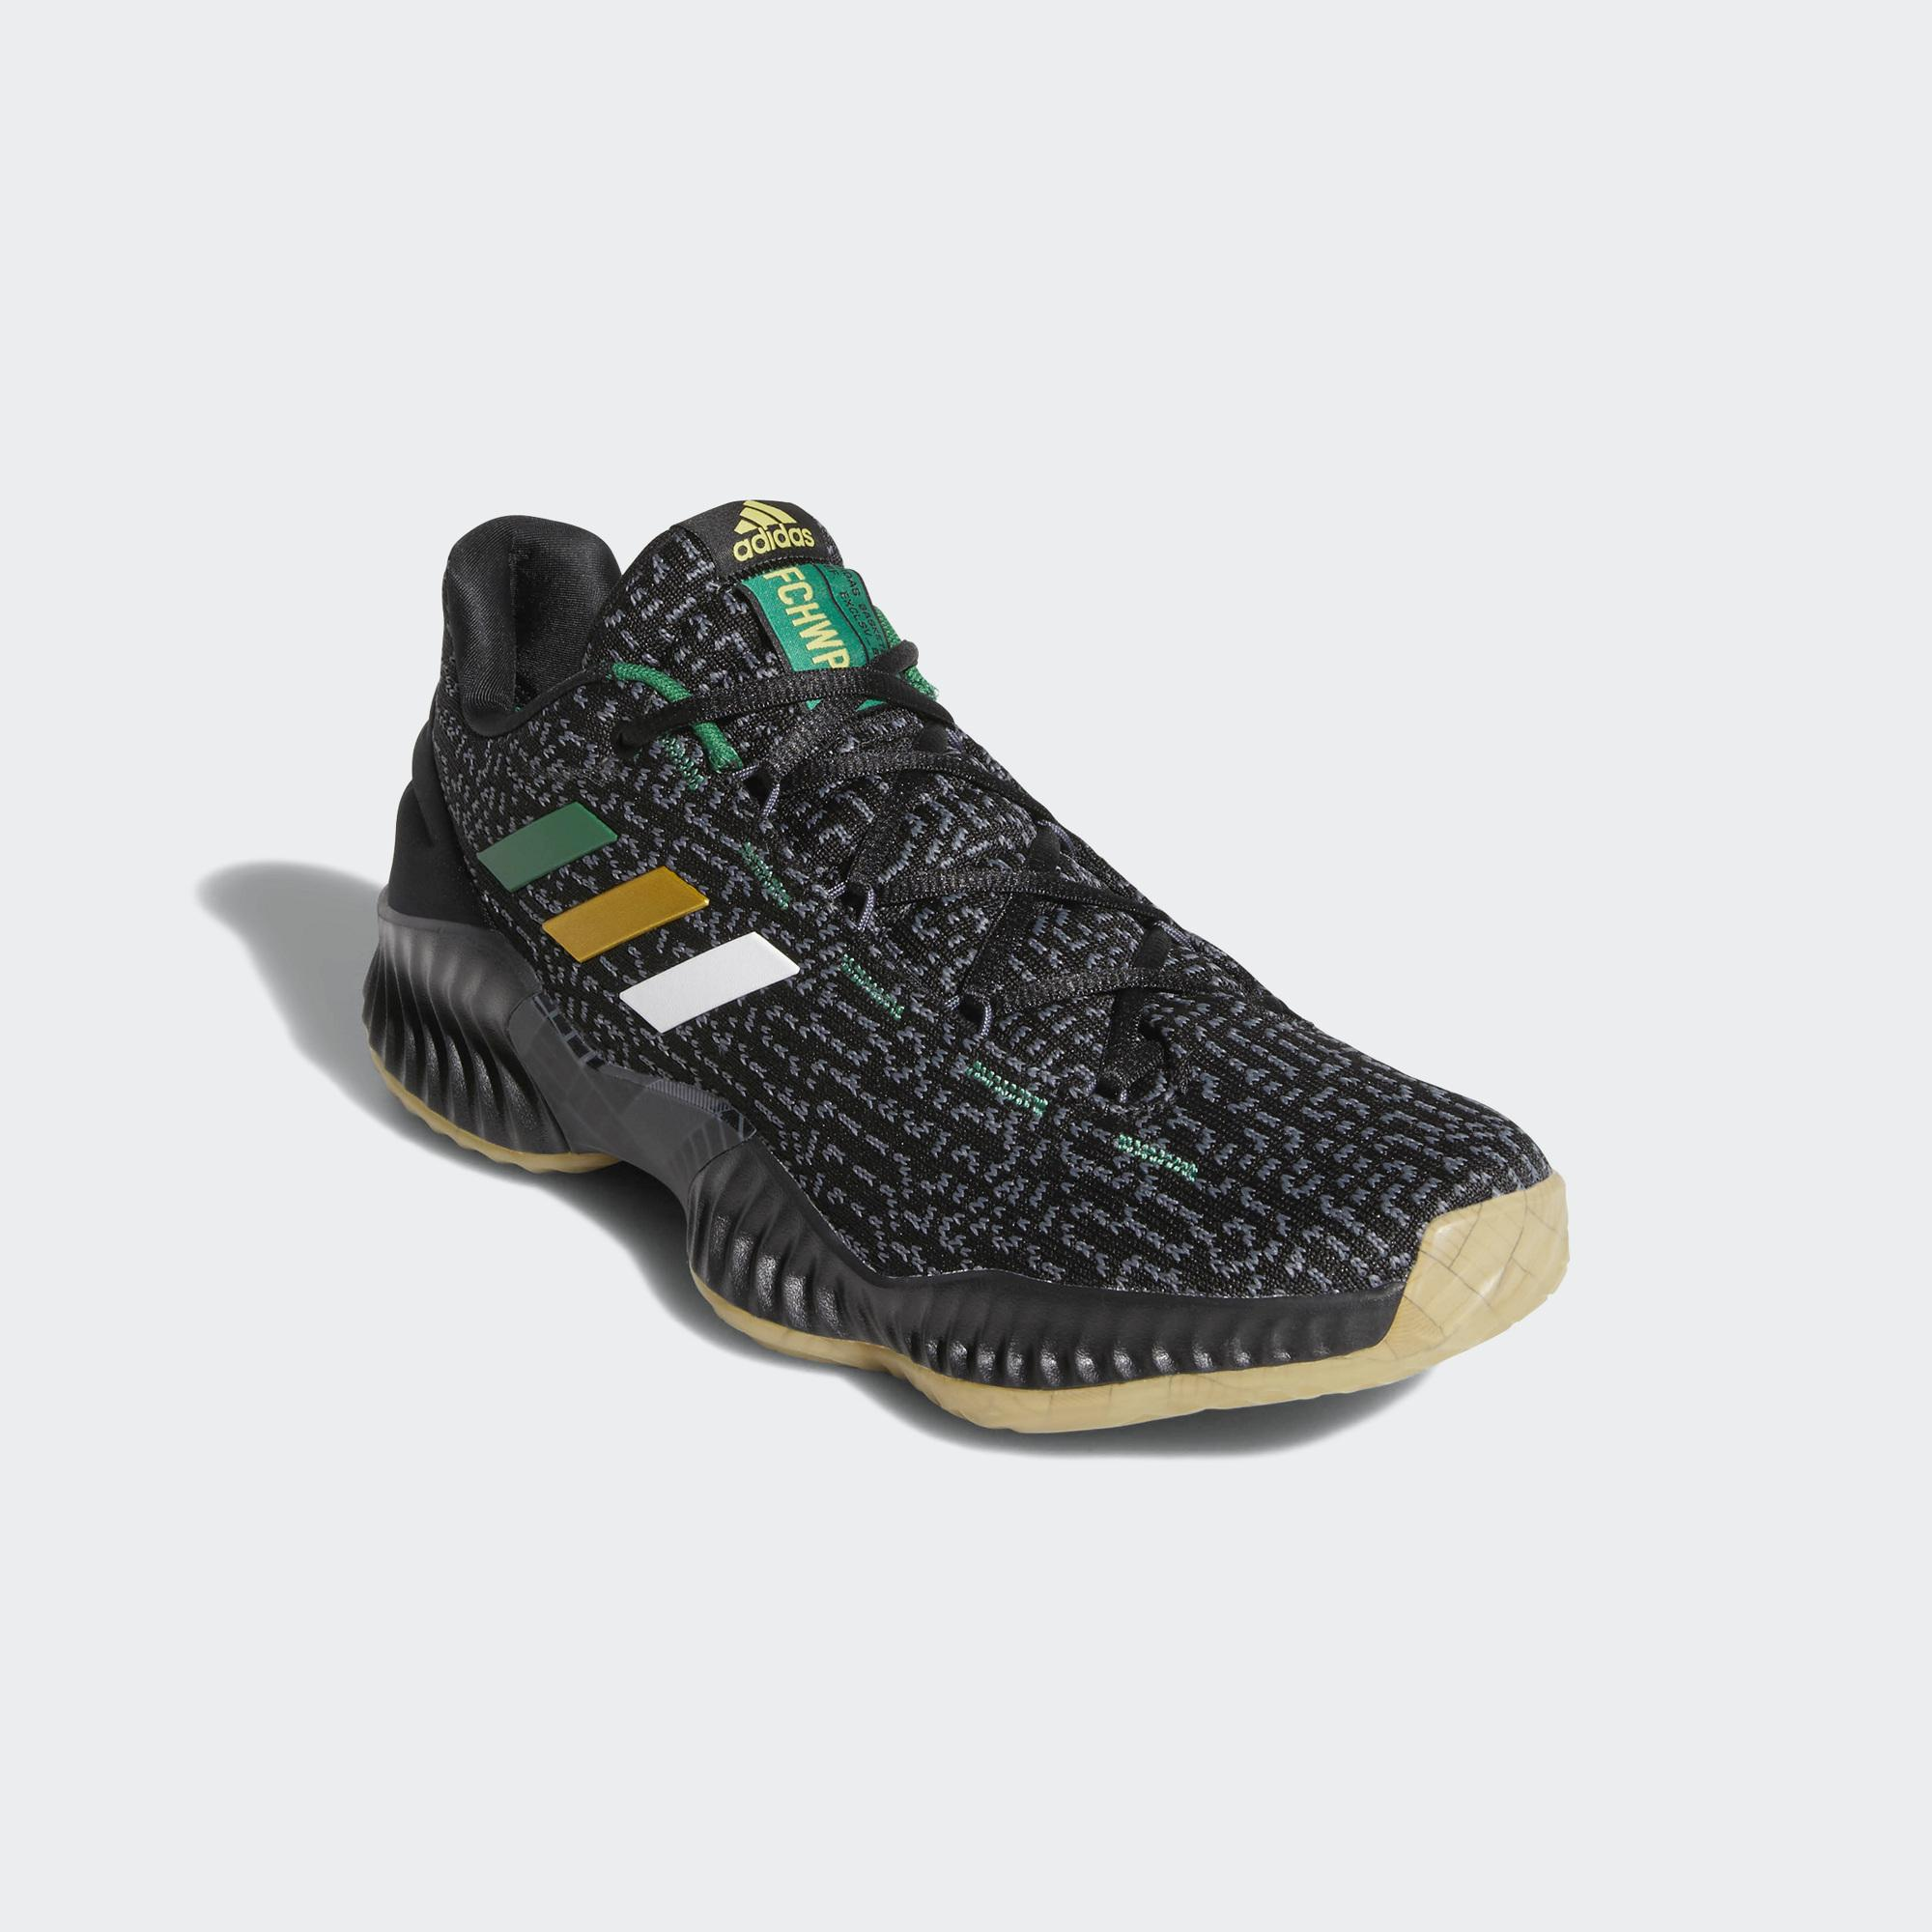 48467e063 jaylen brown adidas pro bounce low PE - WearTesters